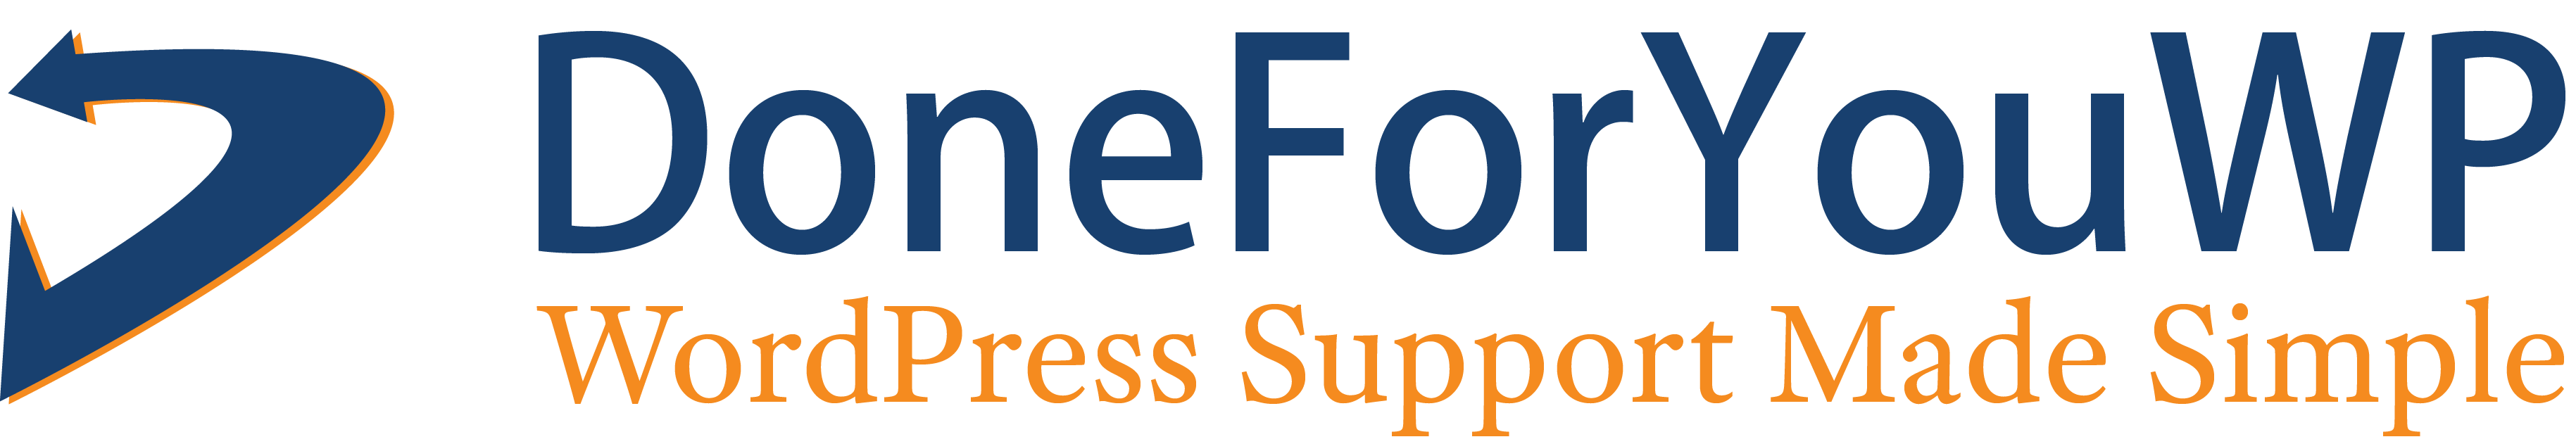 Doneforyouwp WordPress Service and Support